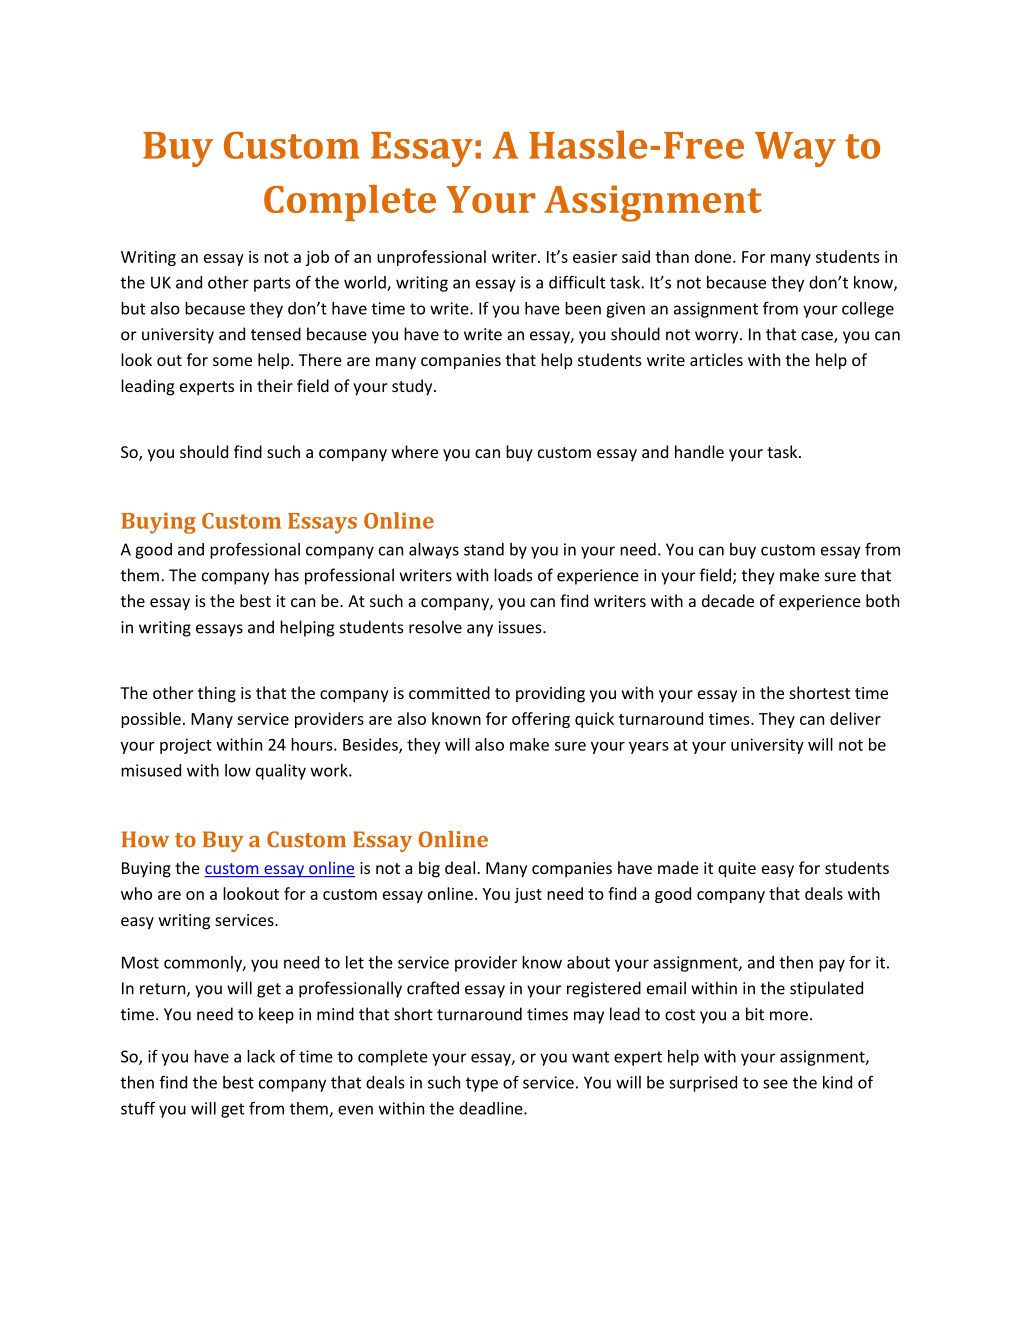 Abraham Lincoln Essay Paper Buy A Custom Essay Buy A Custom Essay  Custom Term Papers And Essays also Essay On Business Management Buy A Custom Essay  Buy Custom Essays Online Term Papers And Essays